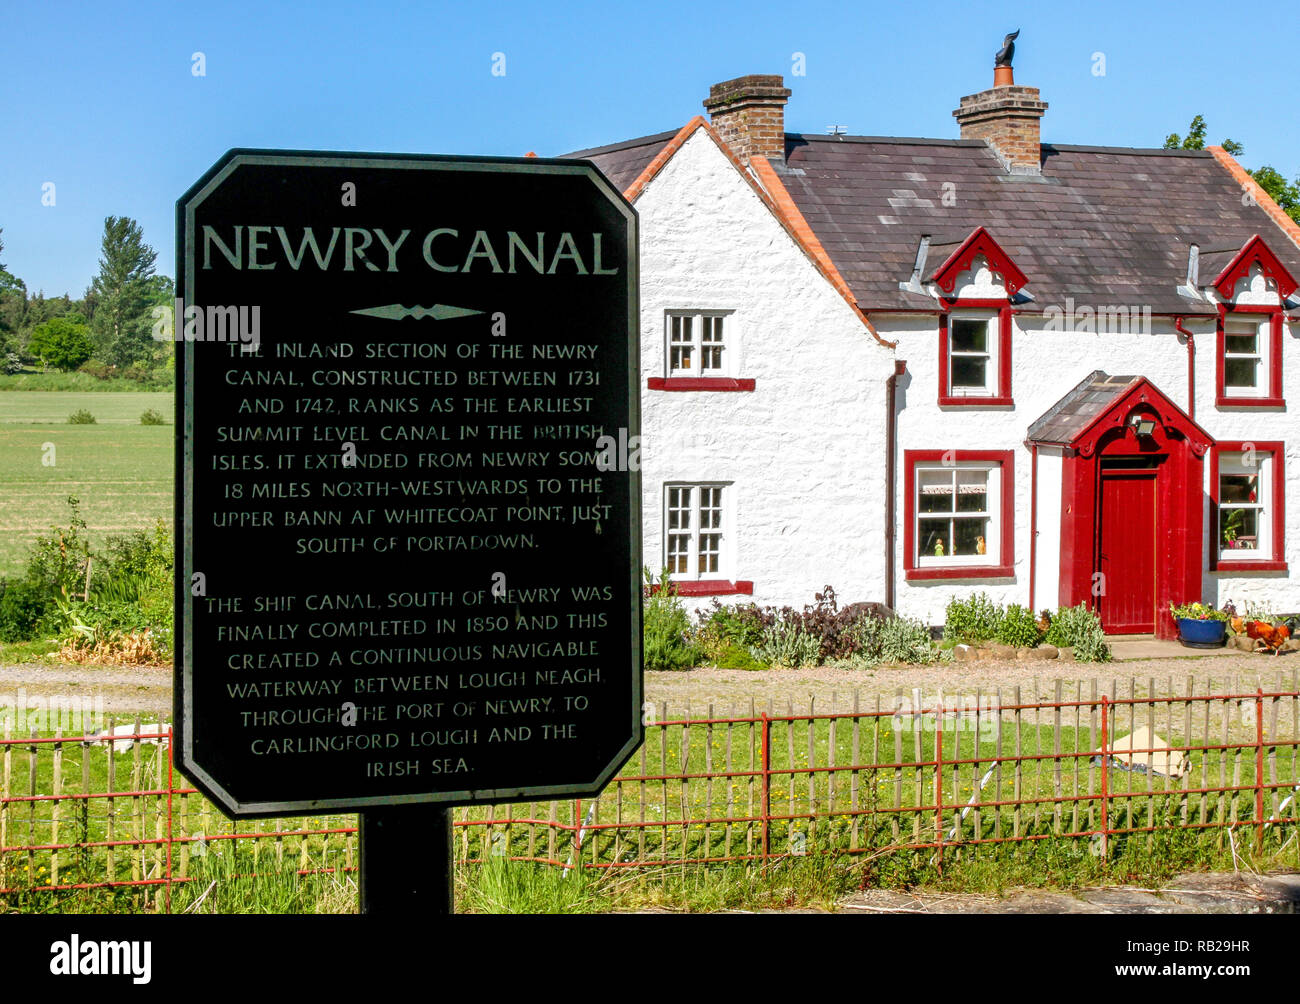 Newry Canal information sign at Moneypenny's Lock near Portadown, County Armagh. Moneypenny's Lockhouse is a restored canal lock house. - Stock Image